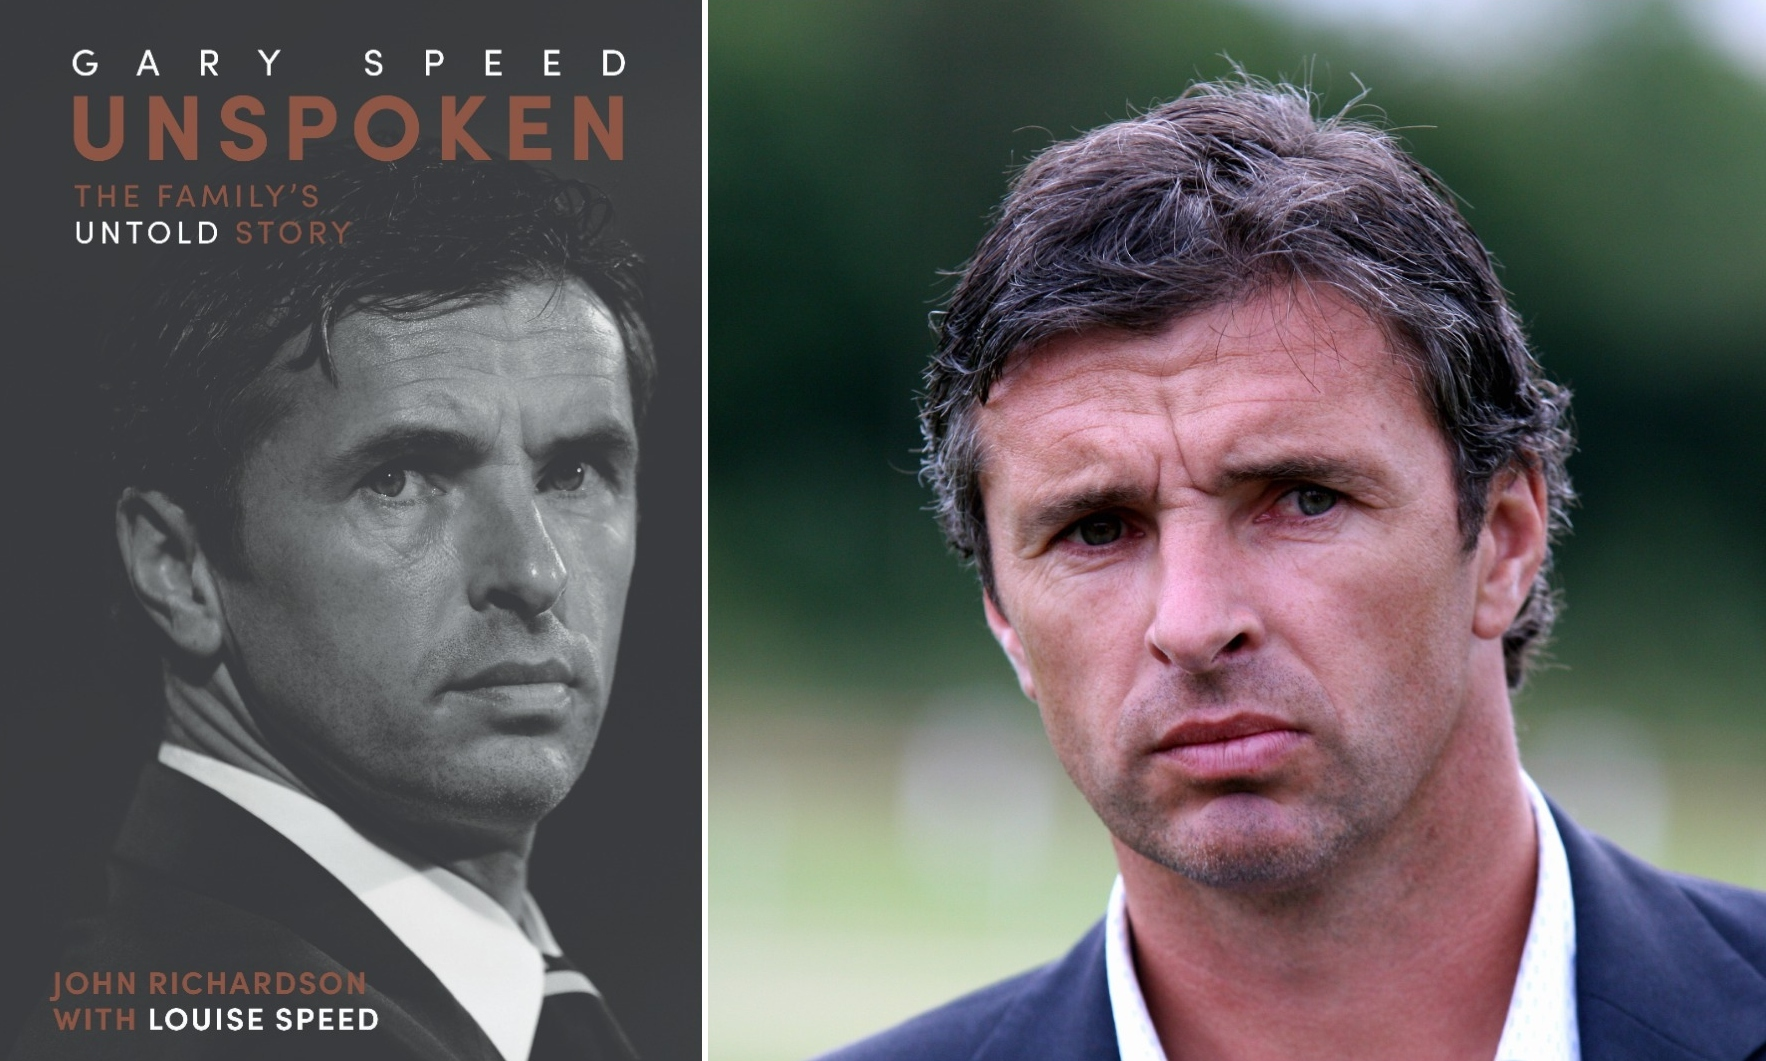 Gary Speed and, left, the new book 'Gary Speed Unspoken' by John Richardson